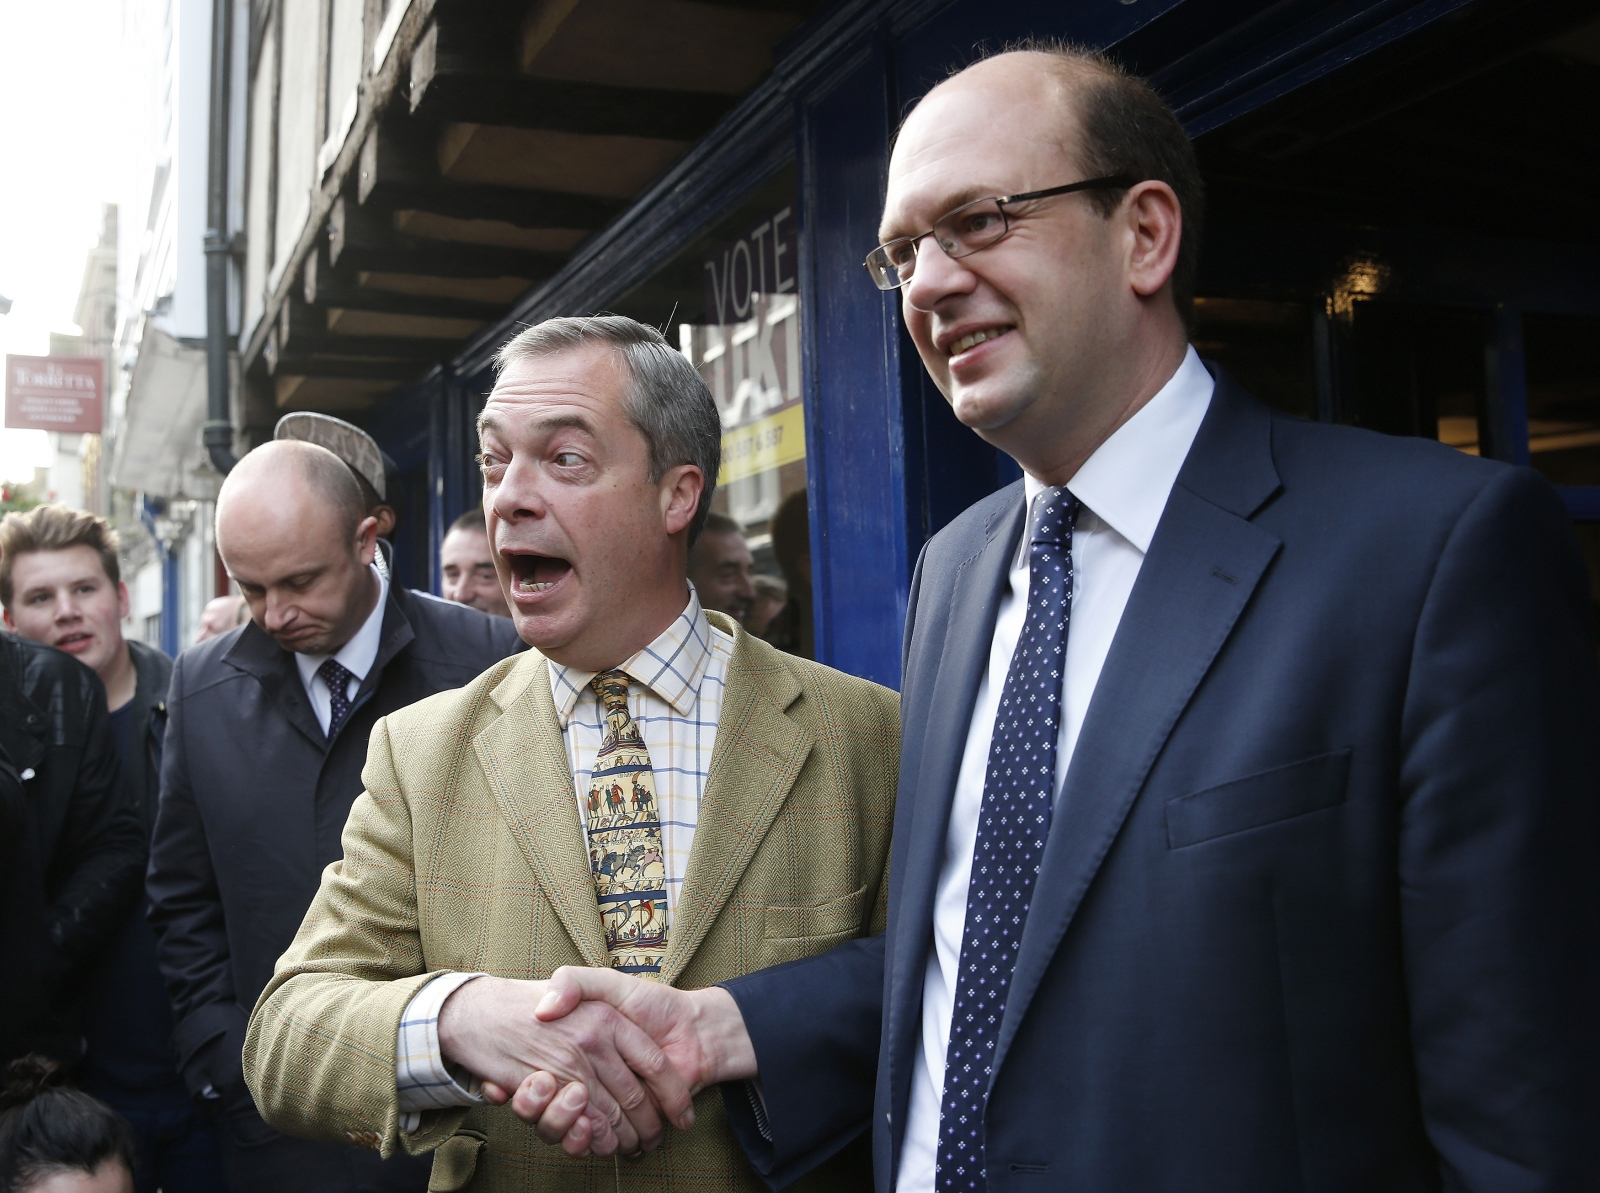 Farage Reckless Ukip